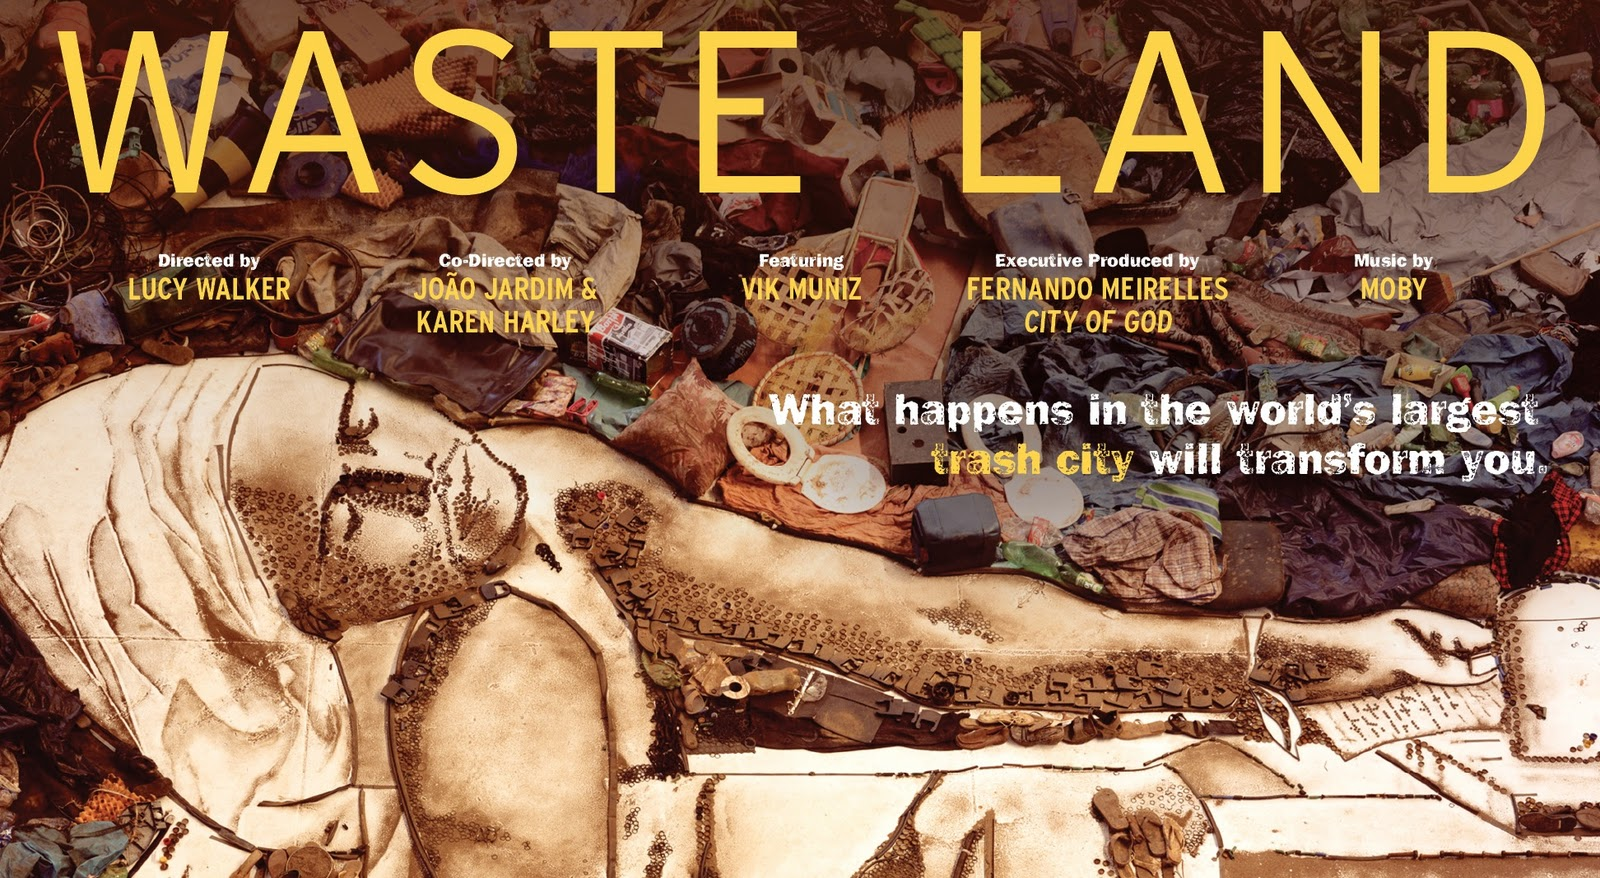 a film analysis of waste land The waste land study guide contains a biography of ts eliot, literature essays, a complete e-text, quiz questions, major themes, characters, and a full summary and.